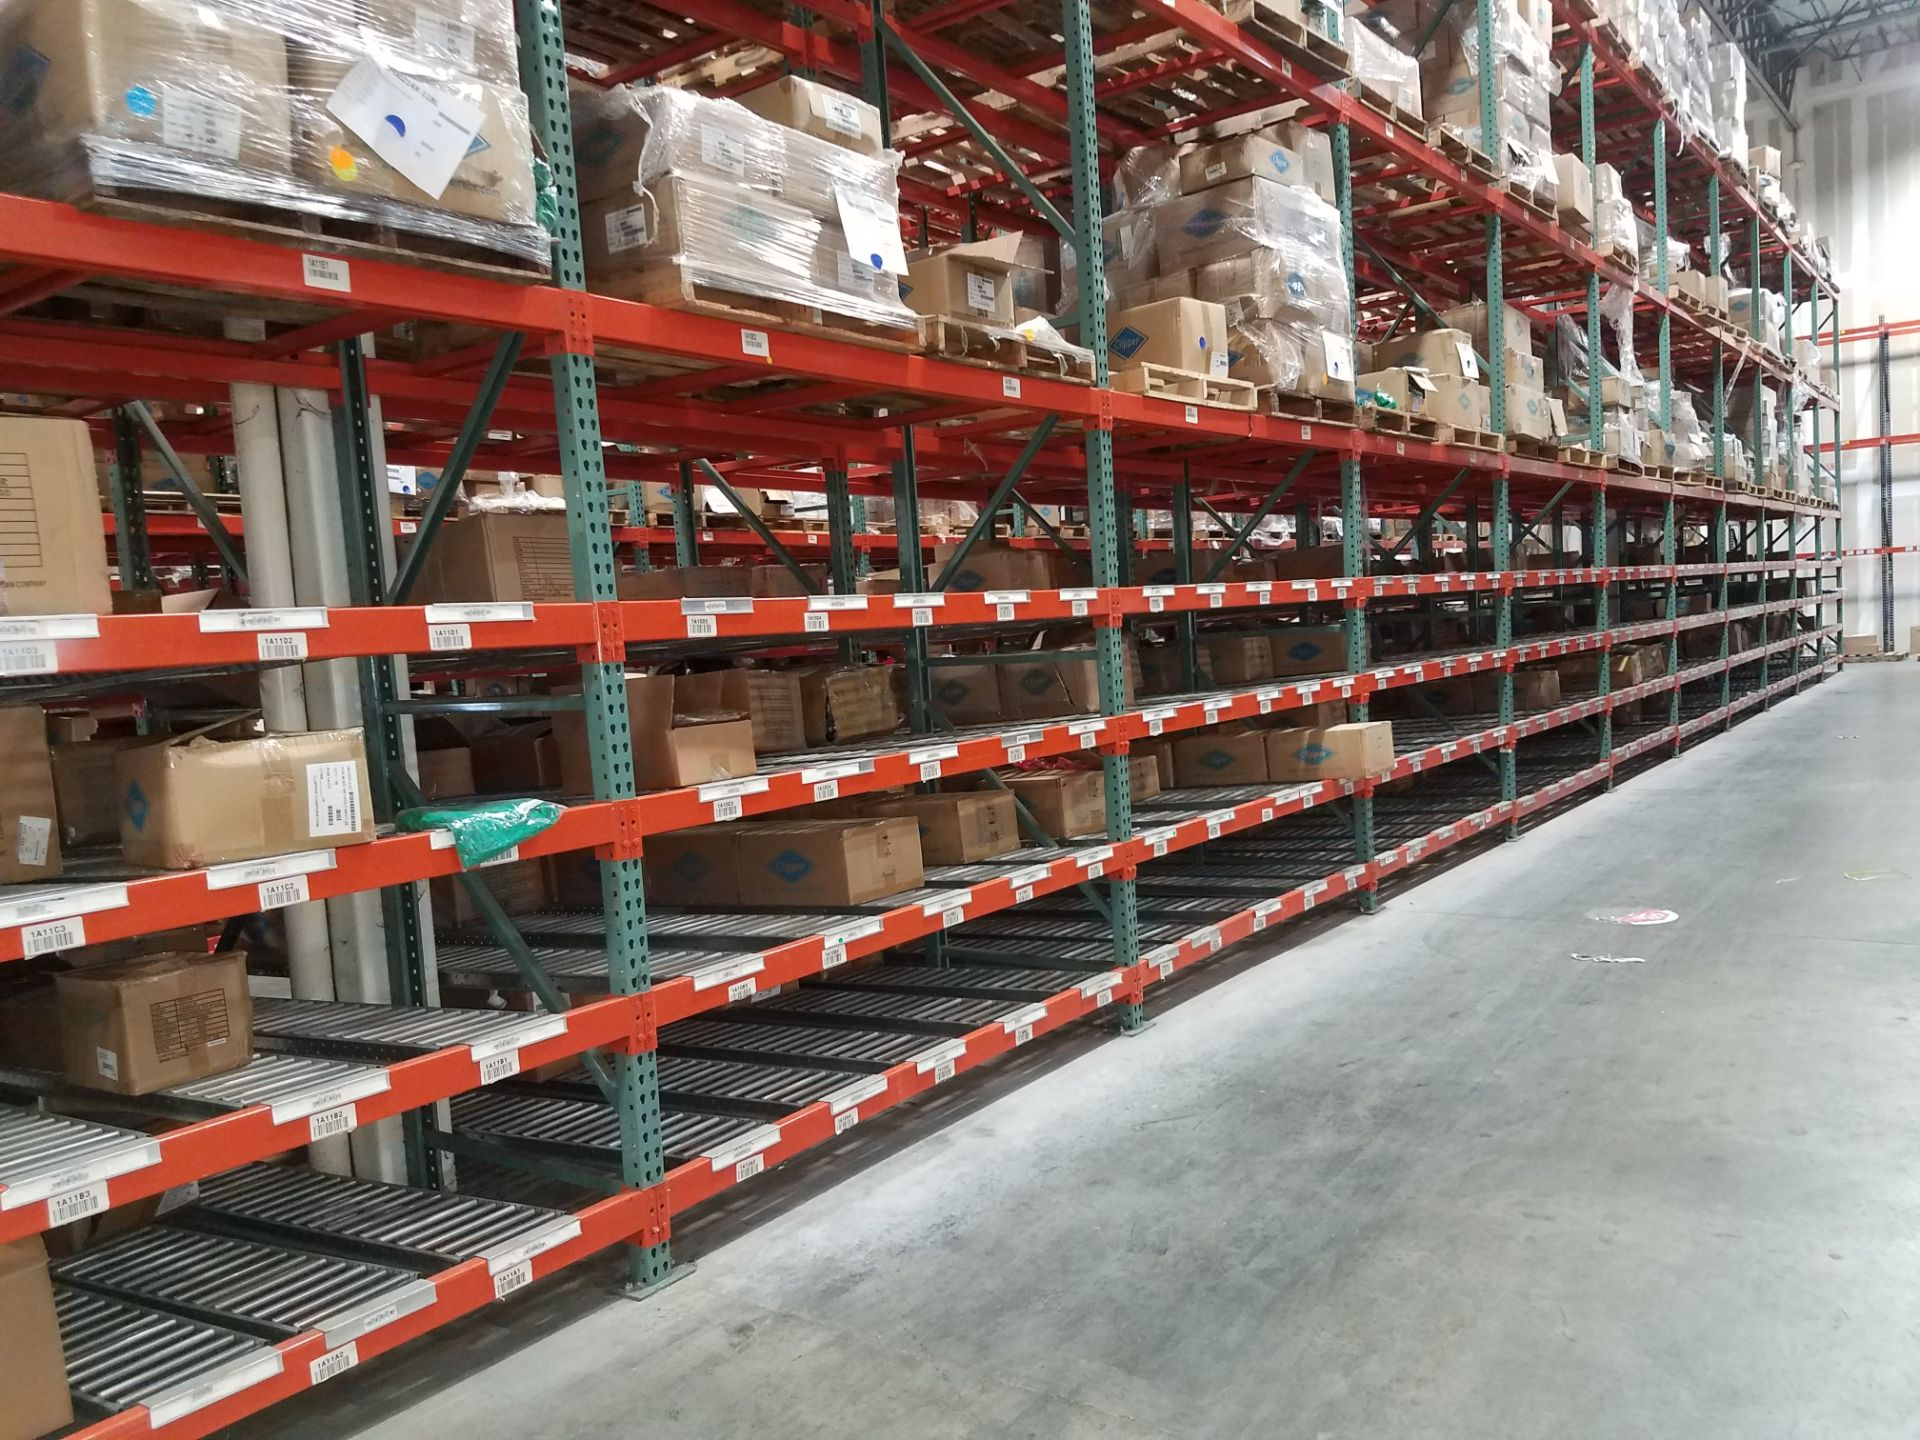 """Lot 10 - 11 BAYS OF 20'H X 42""""D X 96""""L USED TEARDROP STYLE PALLET RACKS WITH UNEX SPAN TRACK FLOW RAILS"""